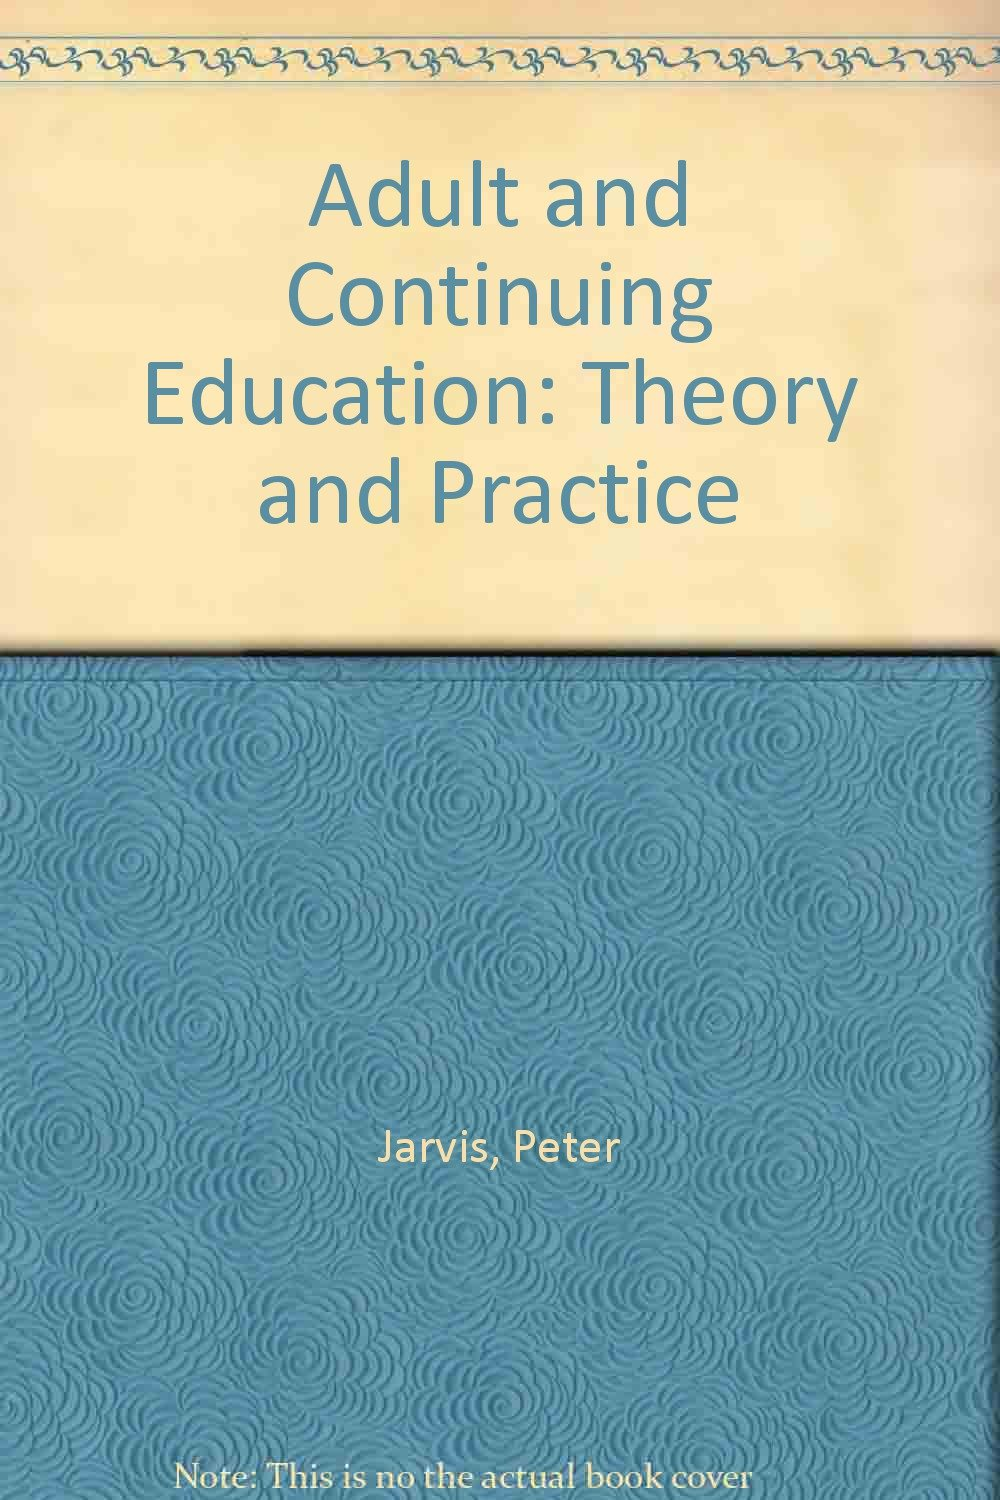 Adult and Continuing Education: Theory and Practice Hardcover – 1983